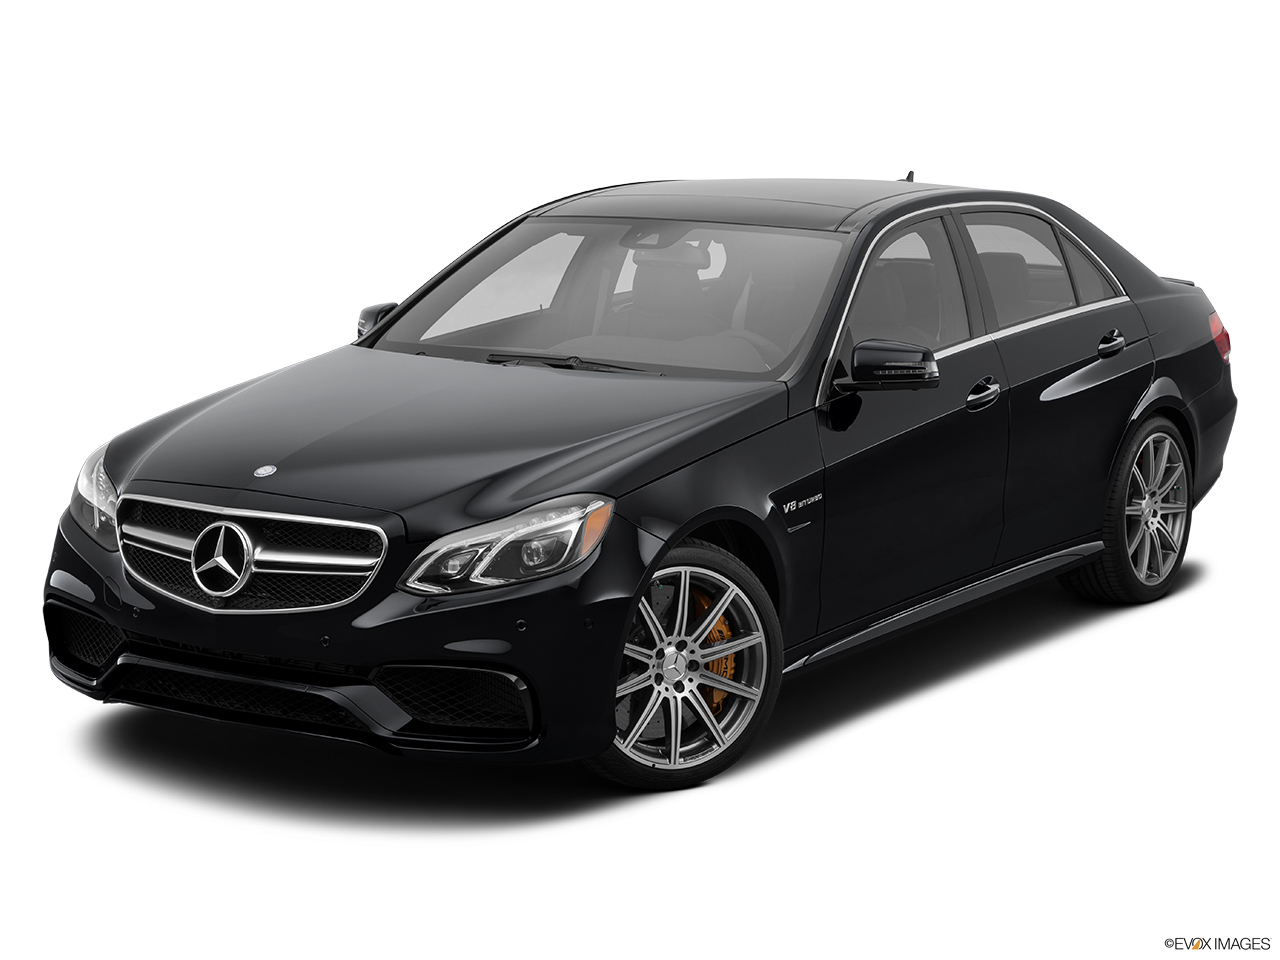 2014 mercedes benz e class sedan e63 amg s model 4matic